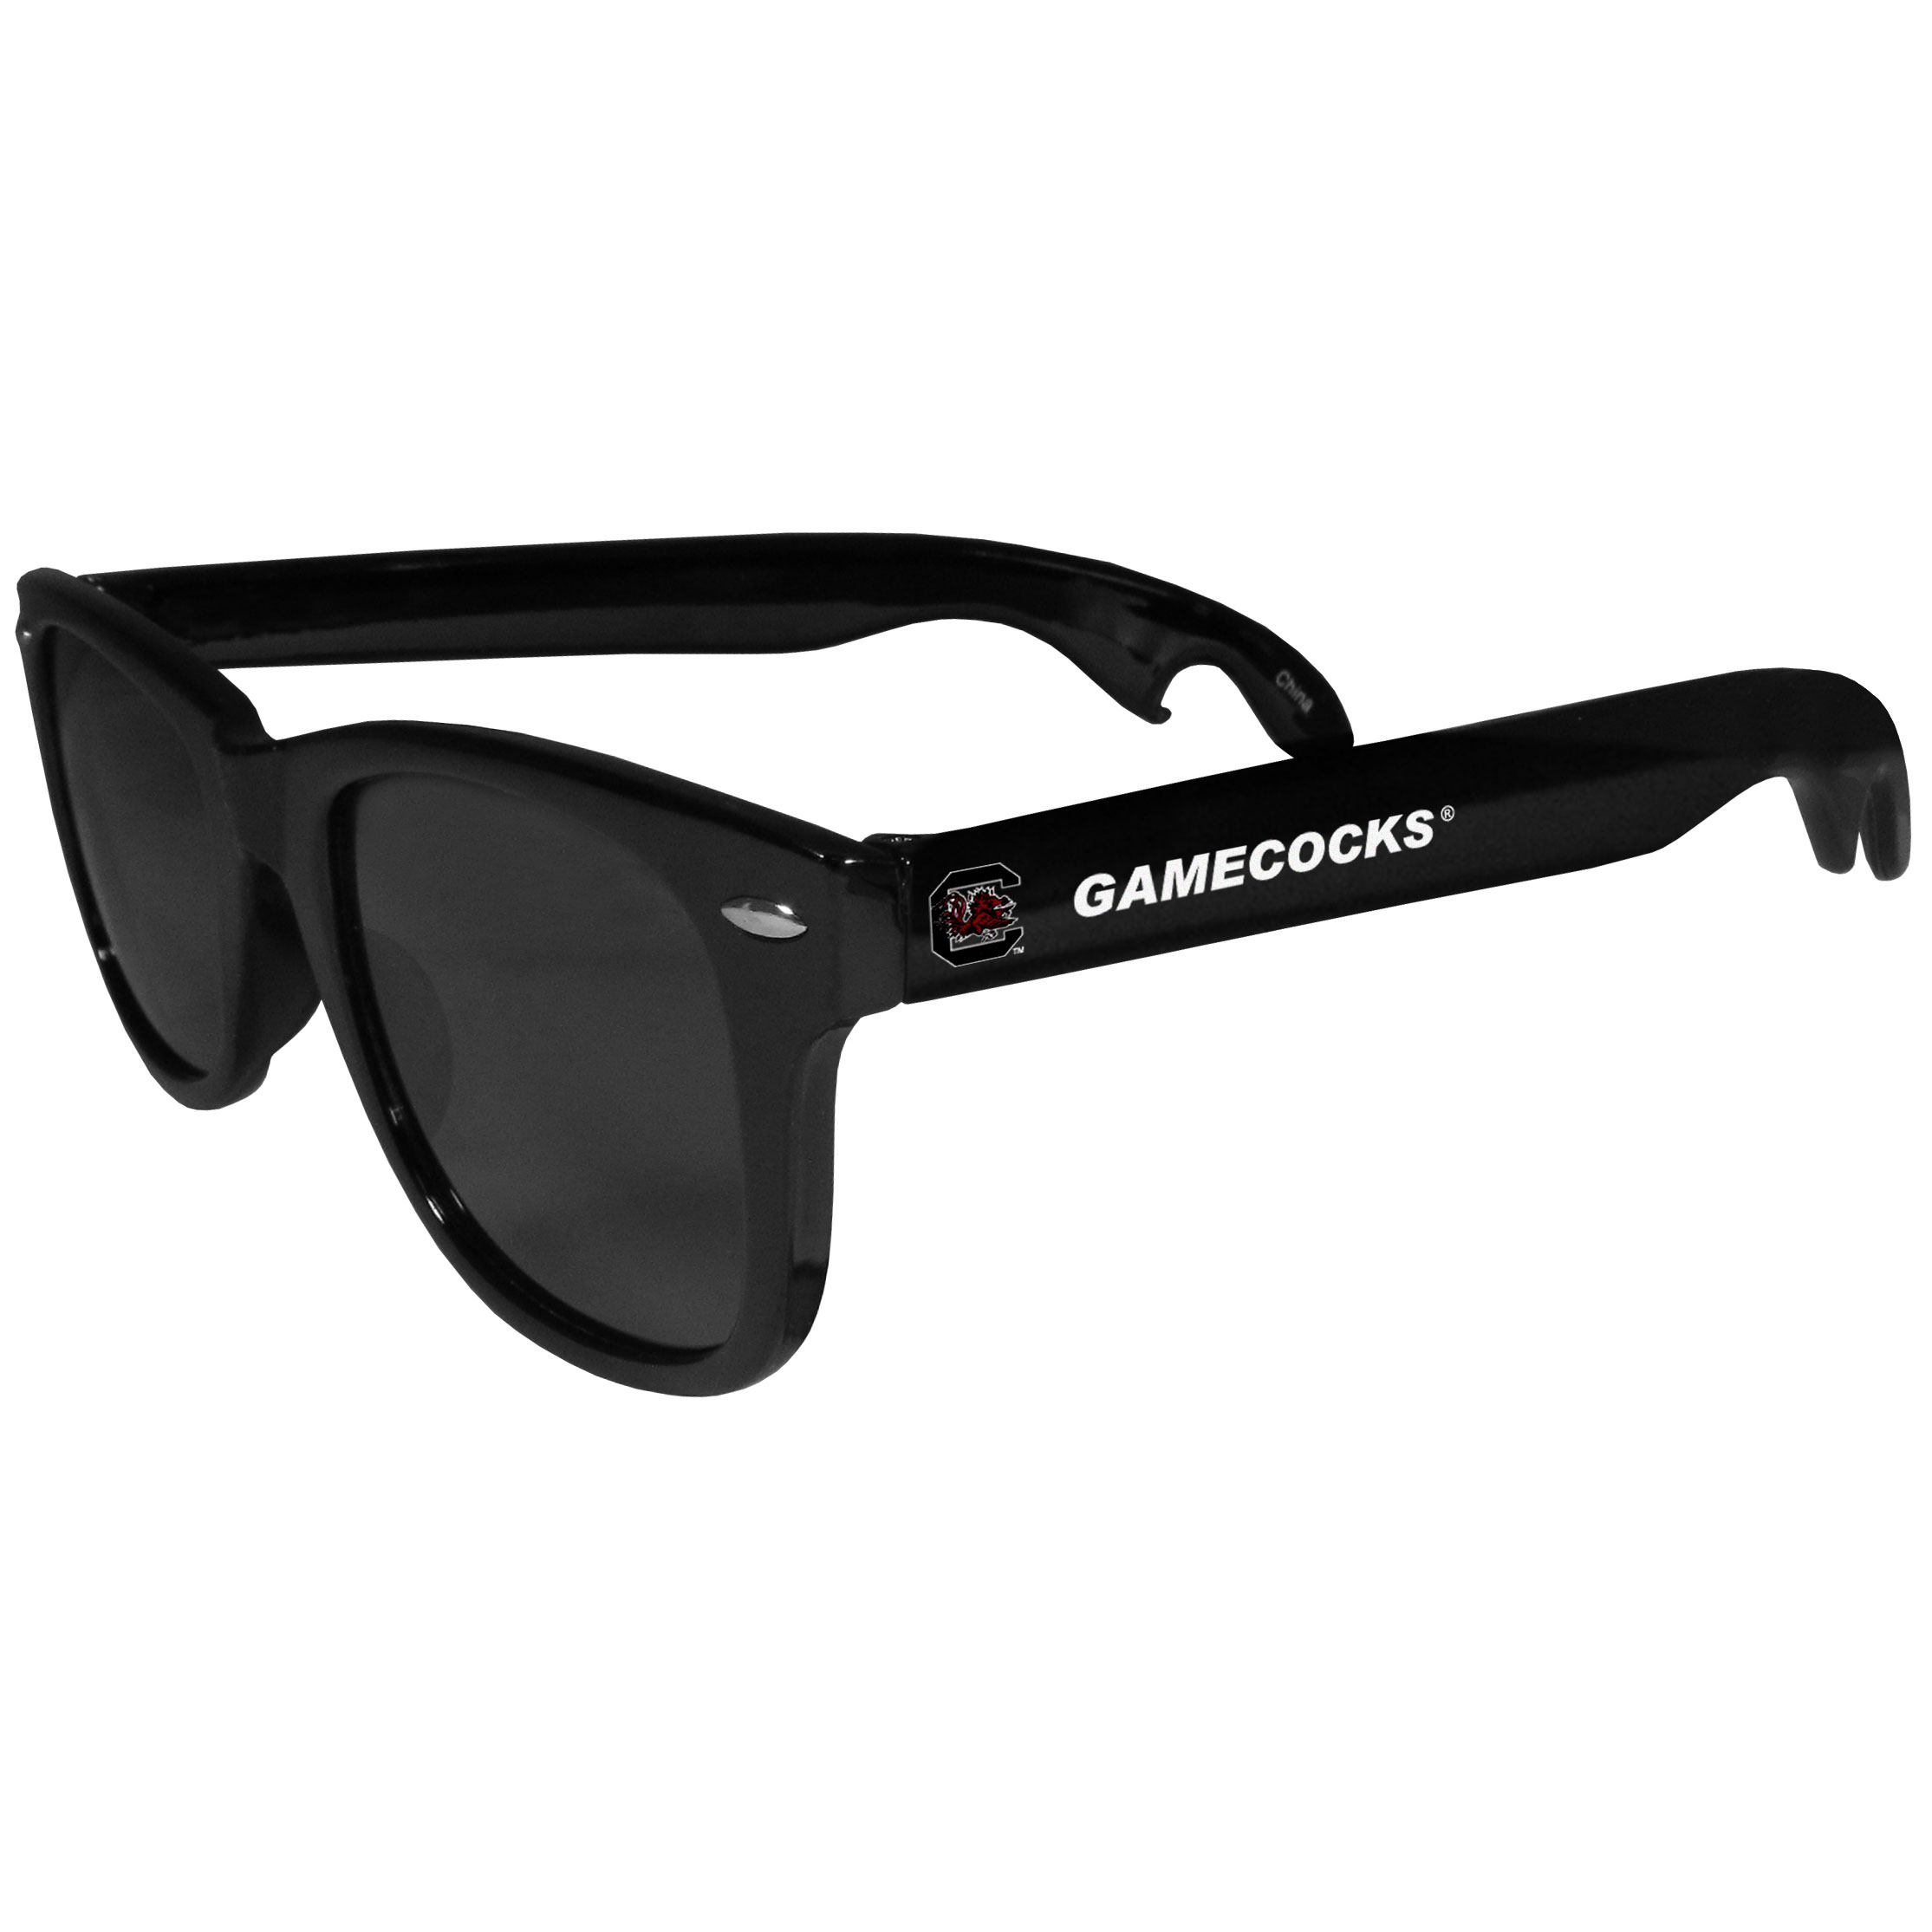 S. Carolina Gamecocks Beachfarer Bottle Opener Sunglasses - Seriously, these sunglasses open bottles! Keep the party going with these amazing S. Carolina Gamecocks bottle opener sunglasses. The stylish retro frames feature team designs on the arms and functional bottle openers on the end of the arms. Whether you are at the beach or having a backyard BBQ on game day, these shades will keep your eyes protected with 100% UVA/UVB protection and keep you hydrated with the handy bottle opener arms.